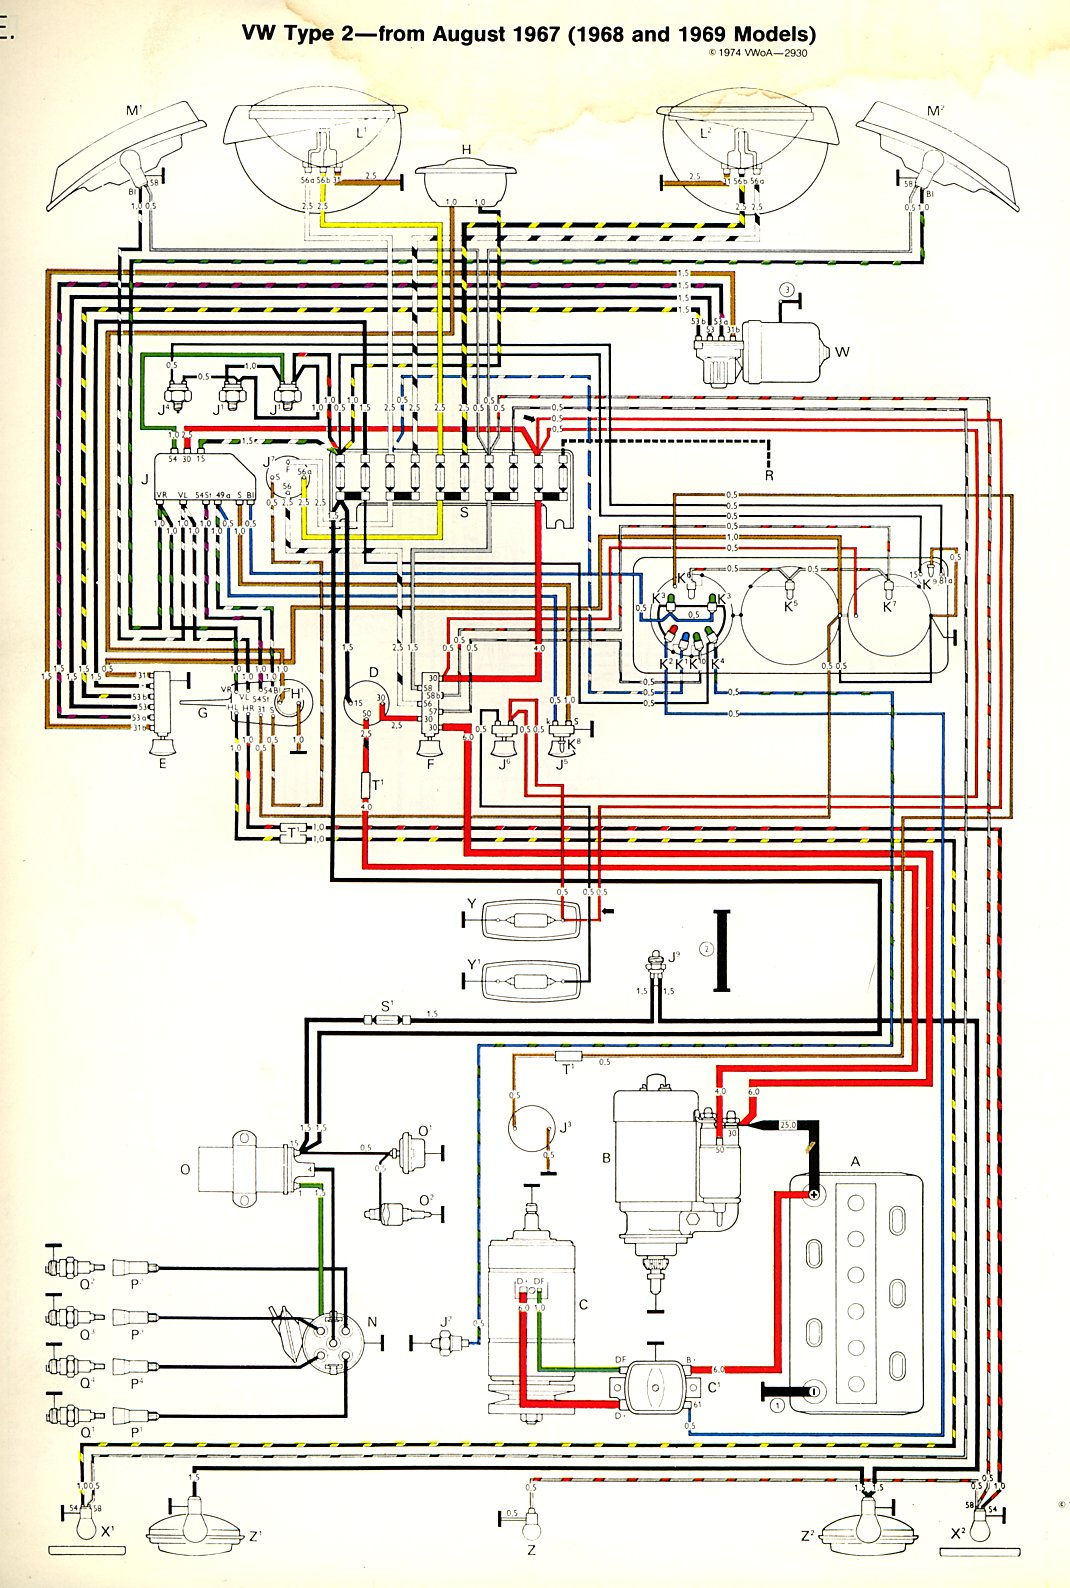 Troubleshooting Basic Electrical Circuit System Wiring Diagrams Saturn Type 2